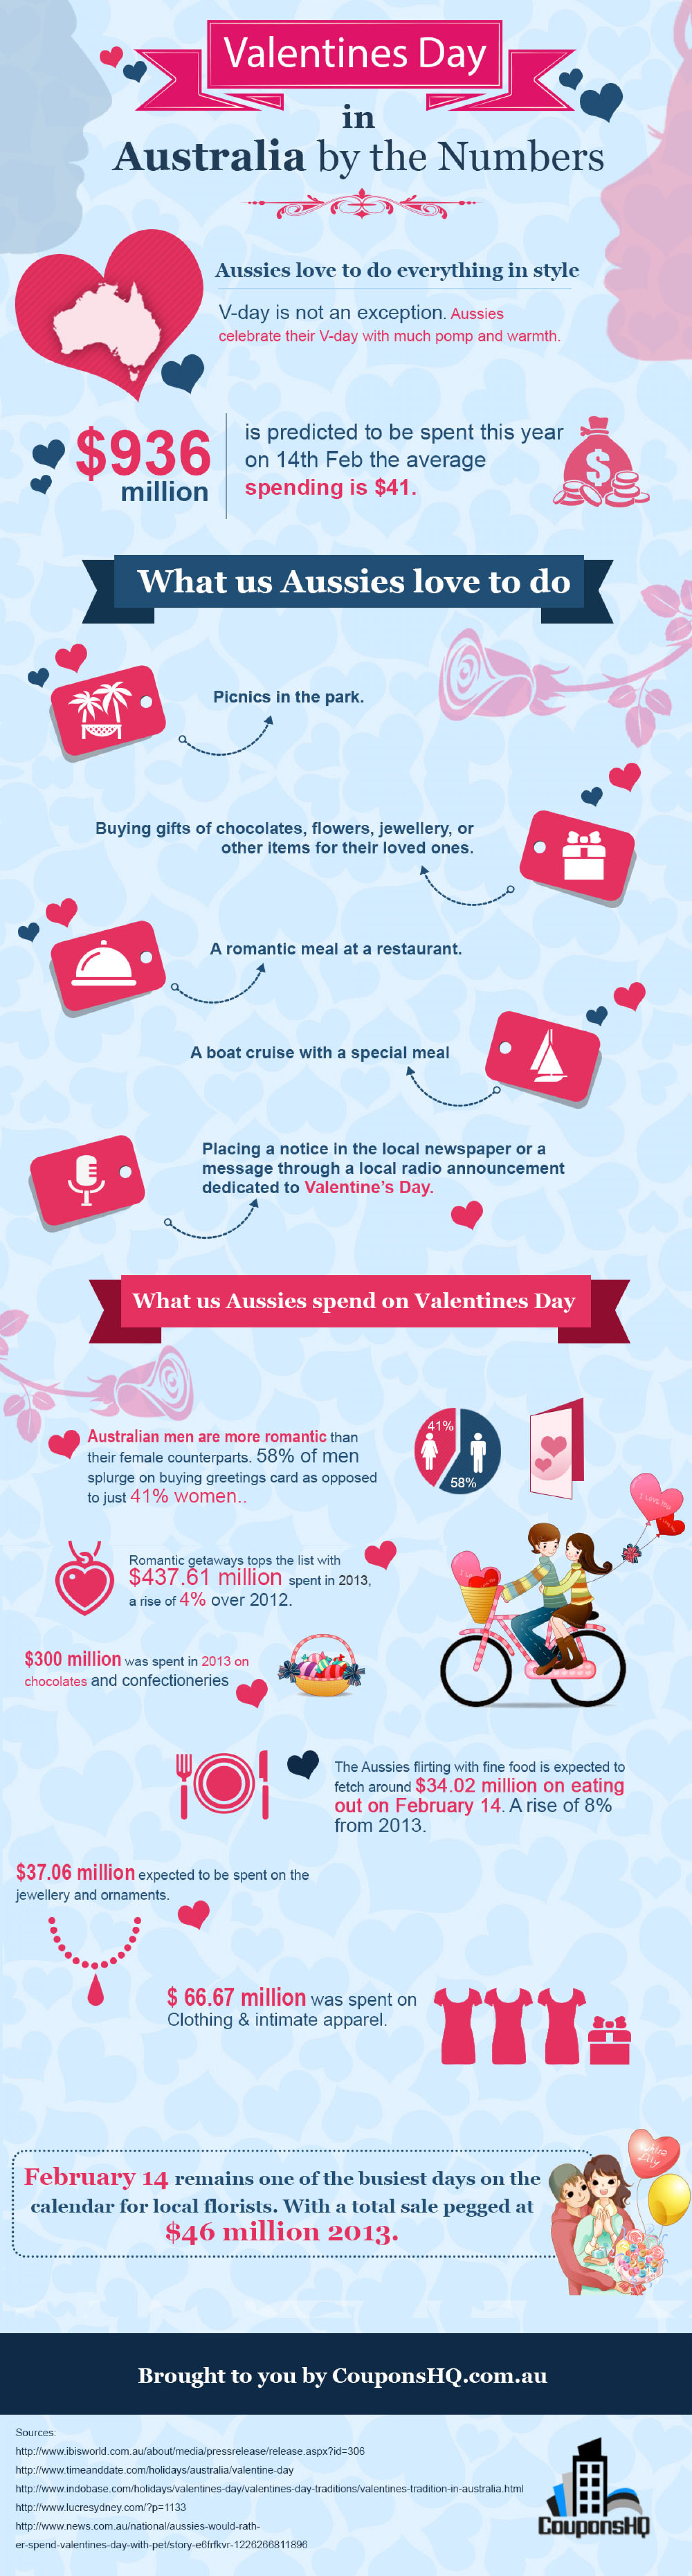 Valentines Day in Austraila by the Numbers Infographic